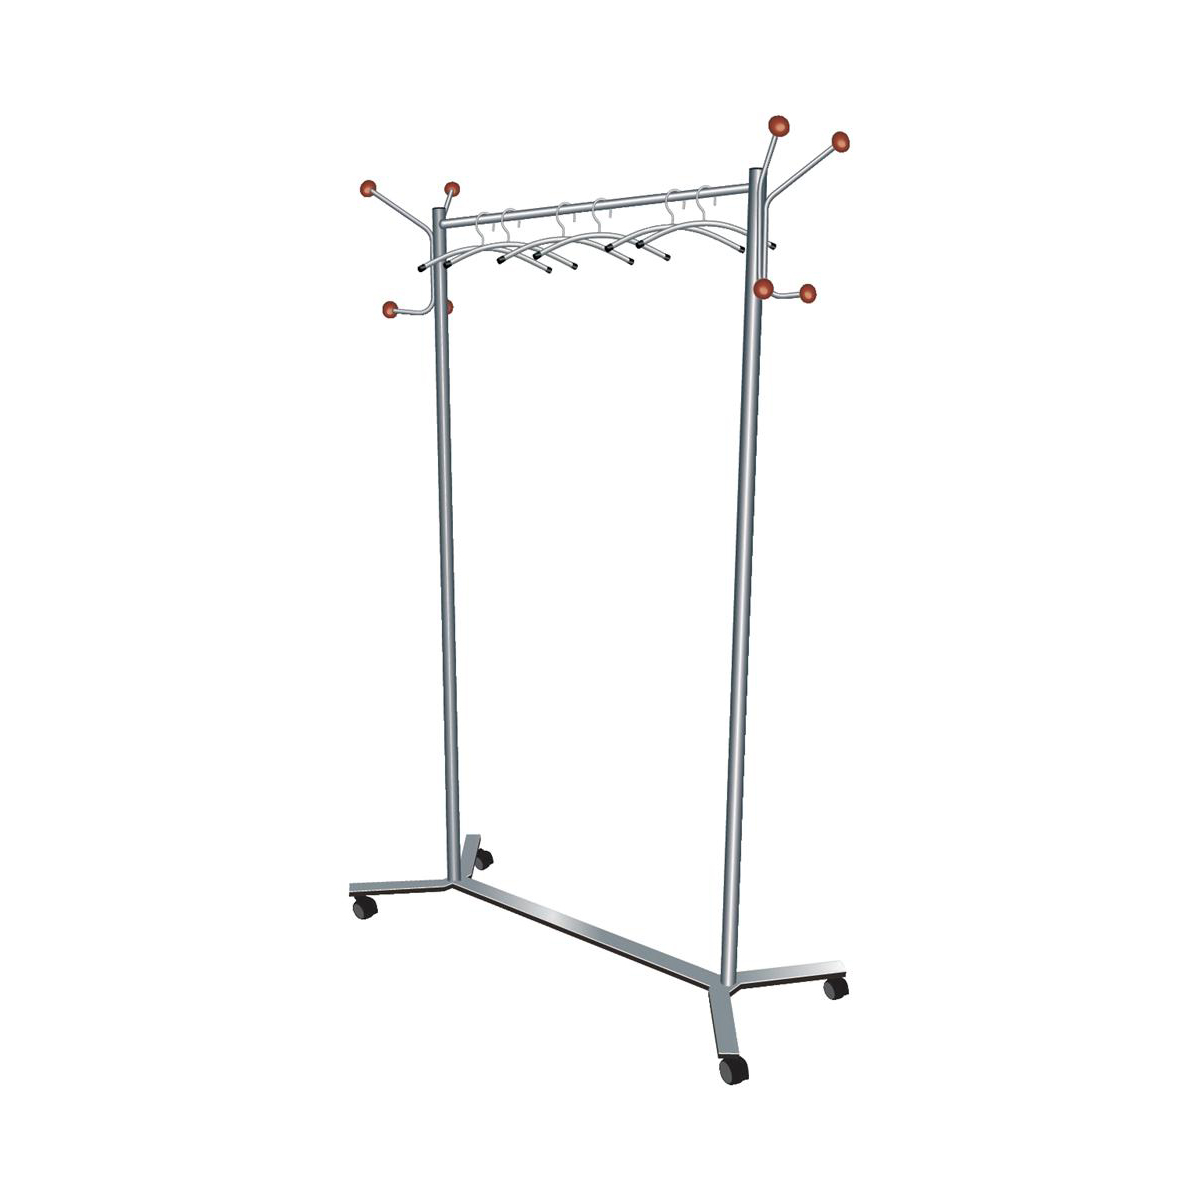 Coat Stands 5 Star Facilities Coat Rack Mobile 4 Wheels 4 Pegs 4 Hooks Capacity of 36 Hangers 1200x500x1700mm Silver